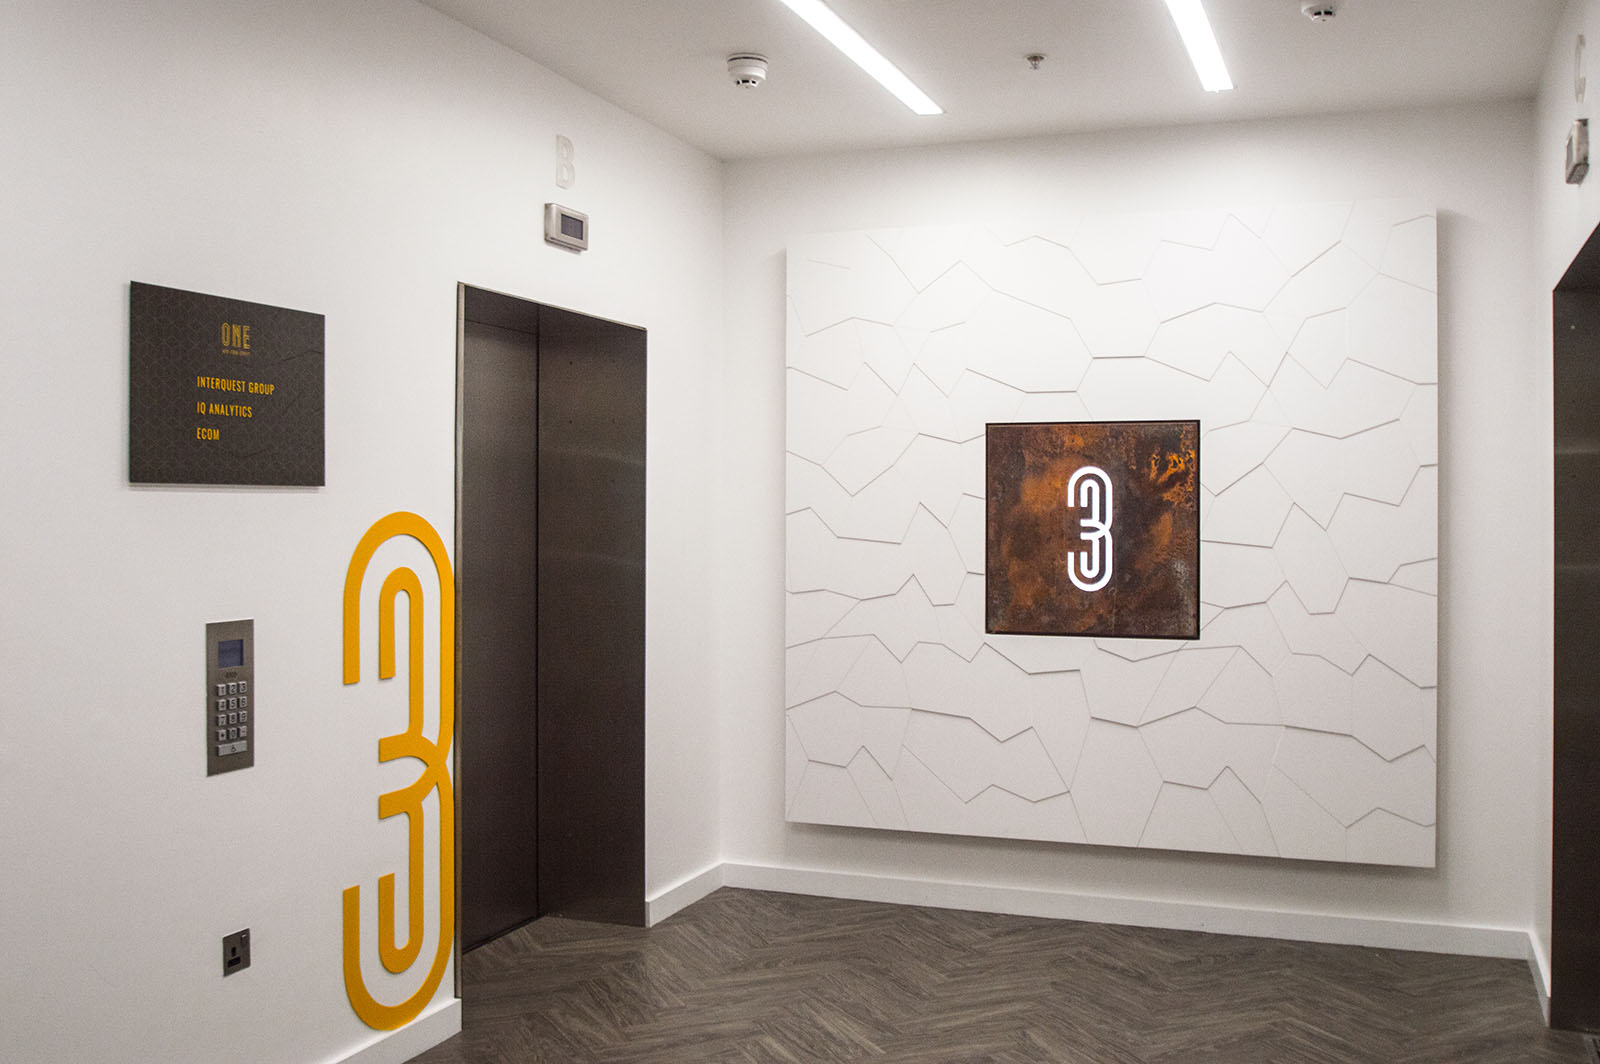 Lift Lobby with branding